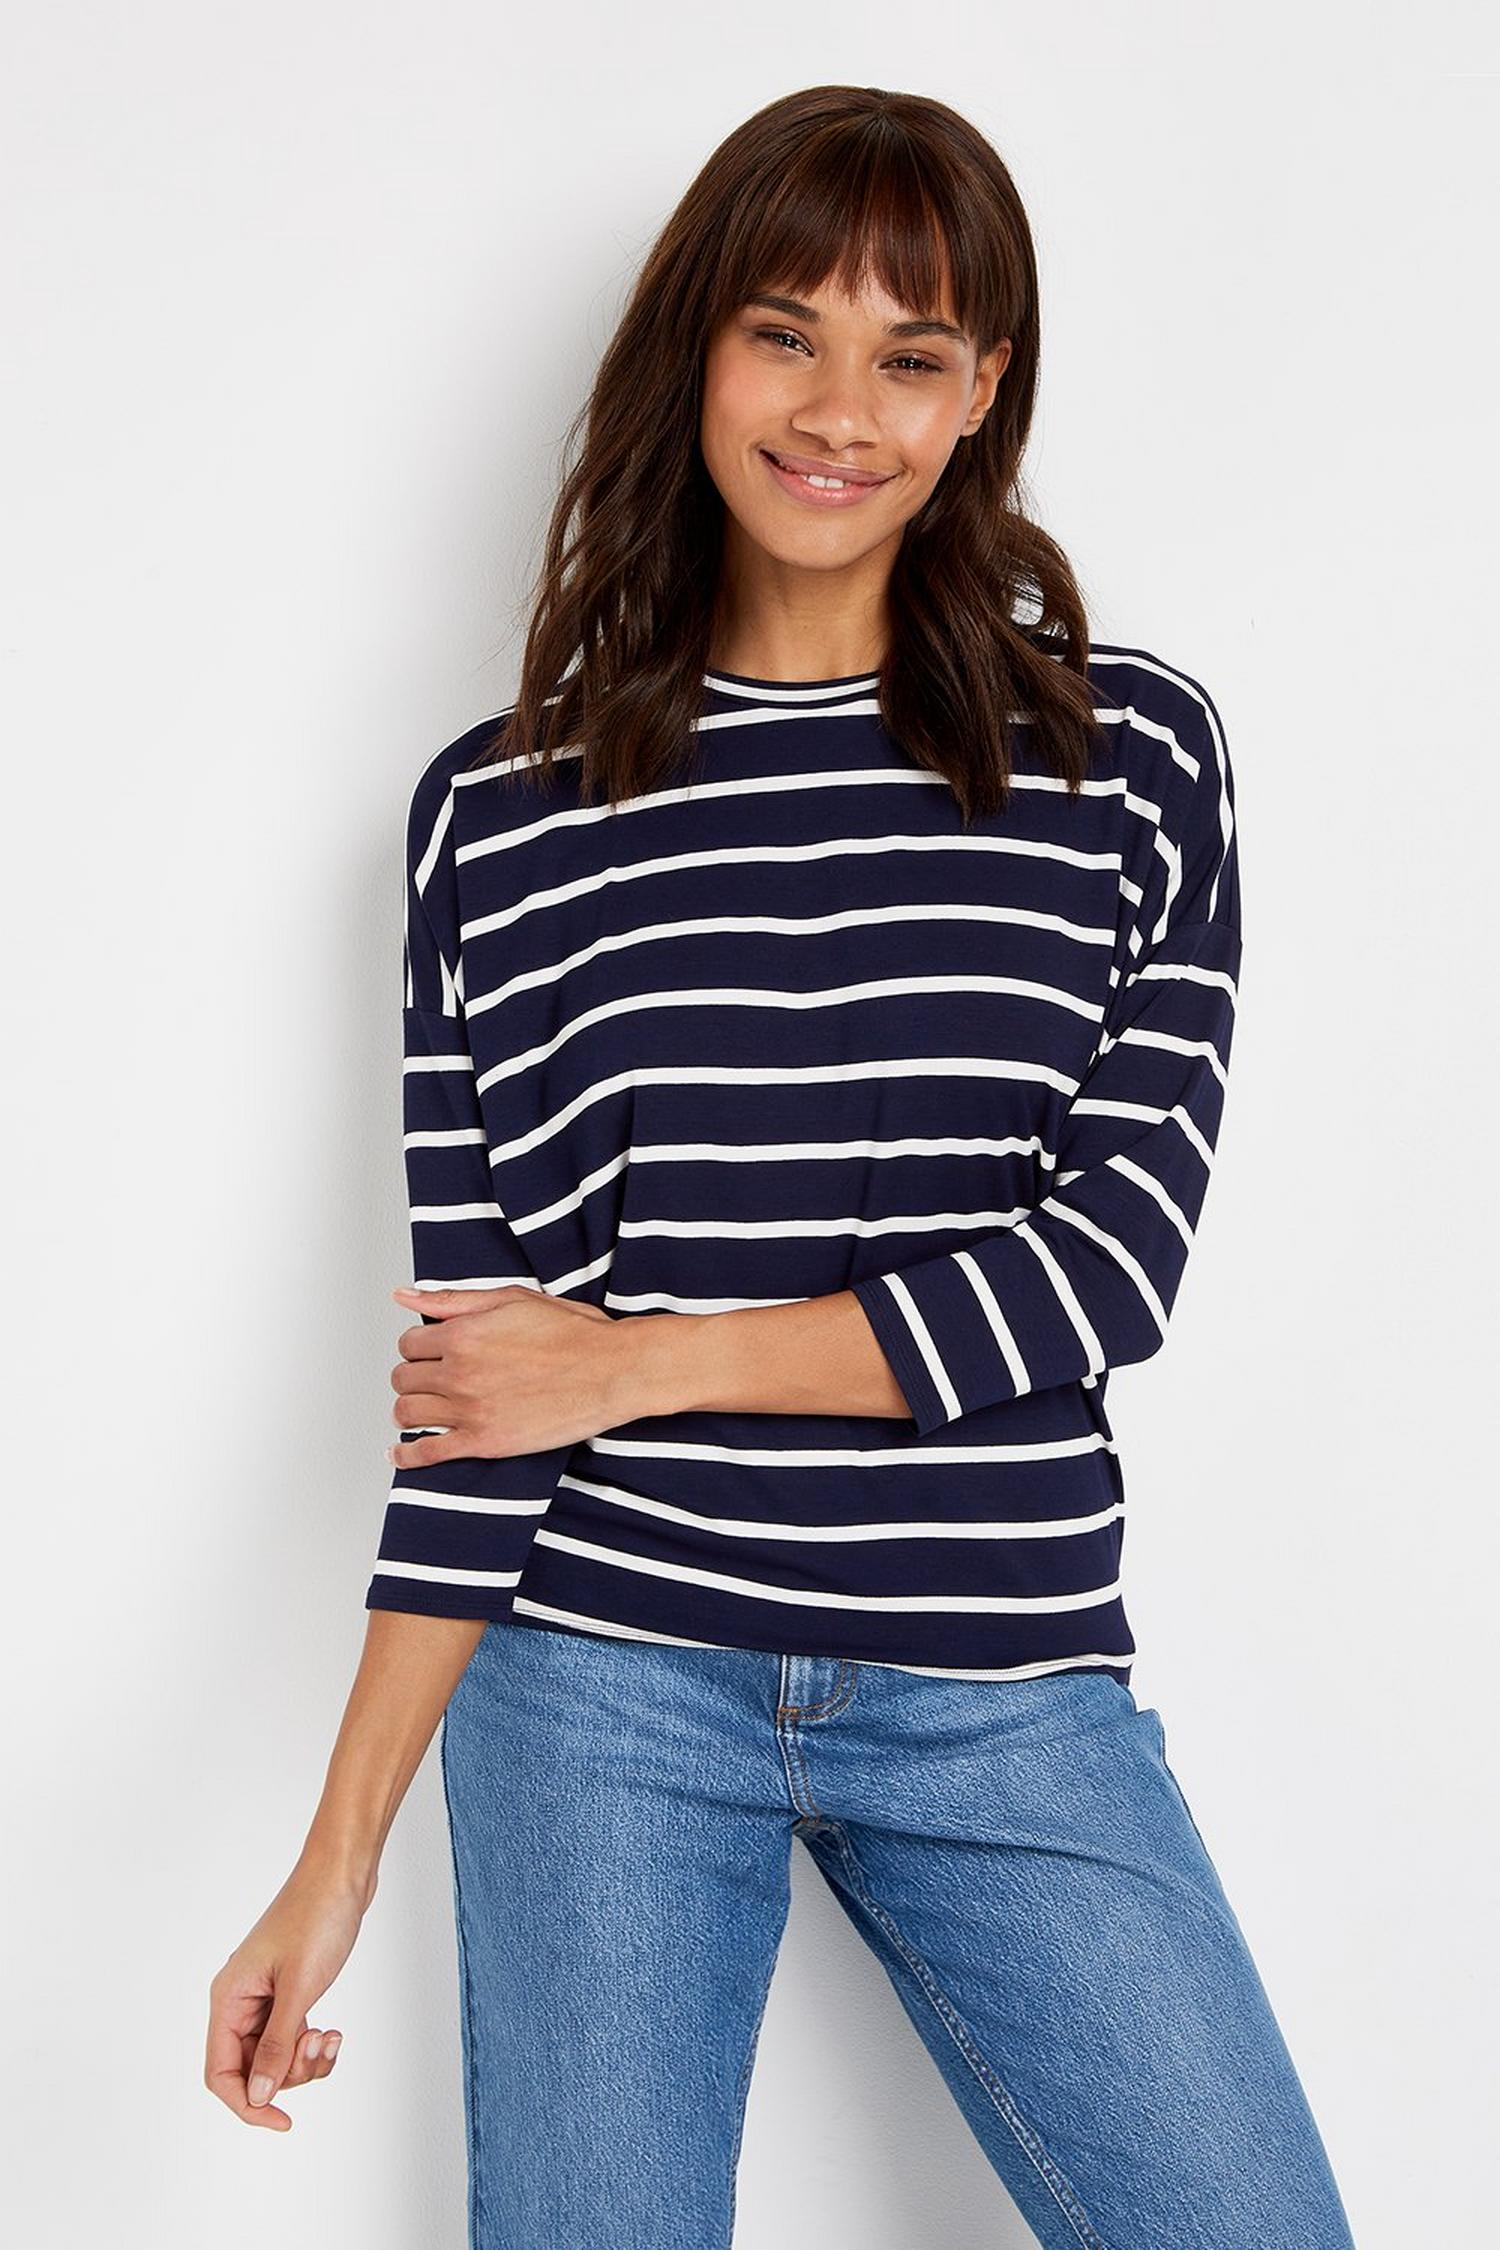 148 TALL Navy Striped Batwing Top image number 3